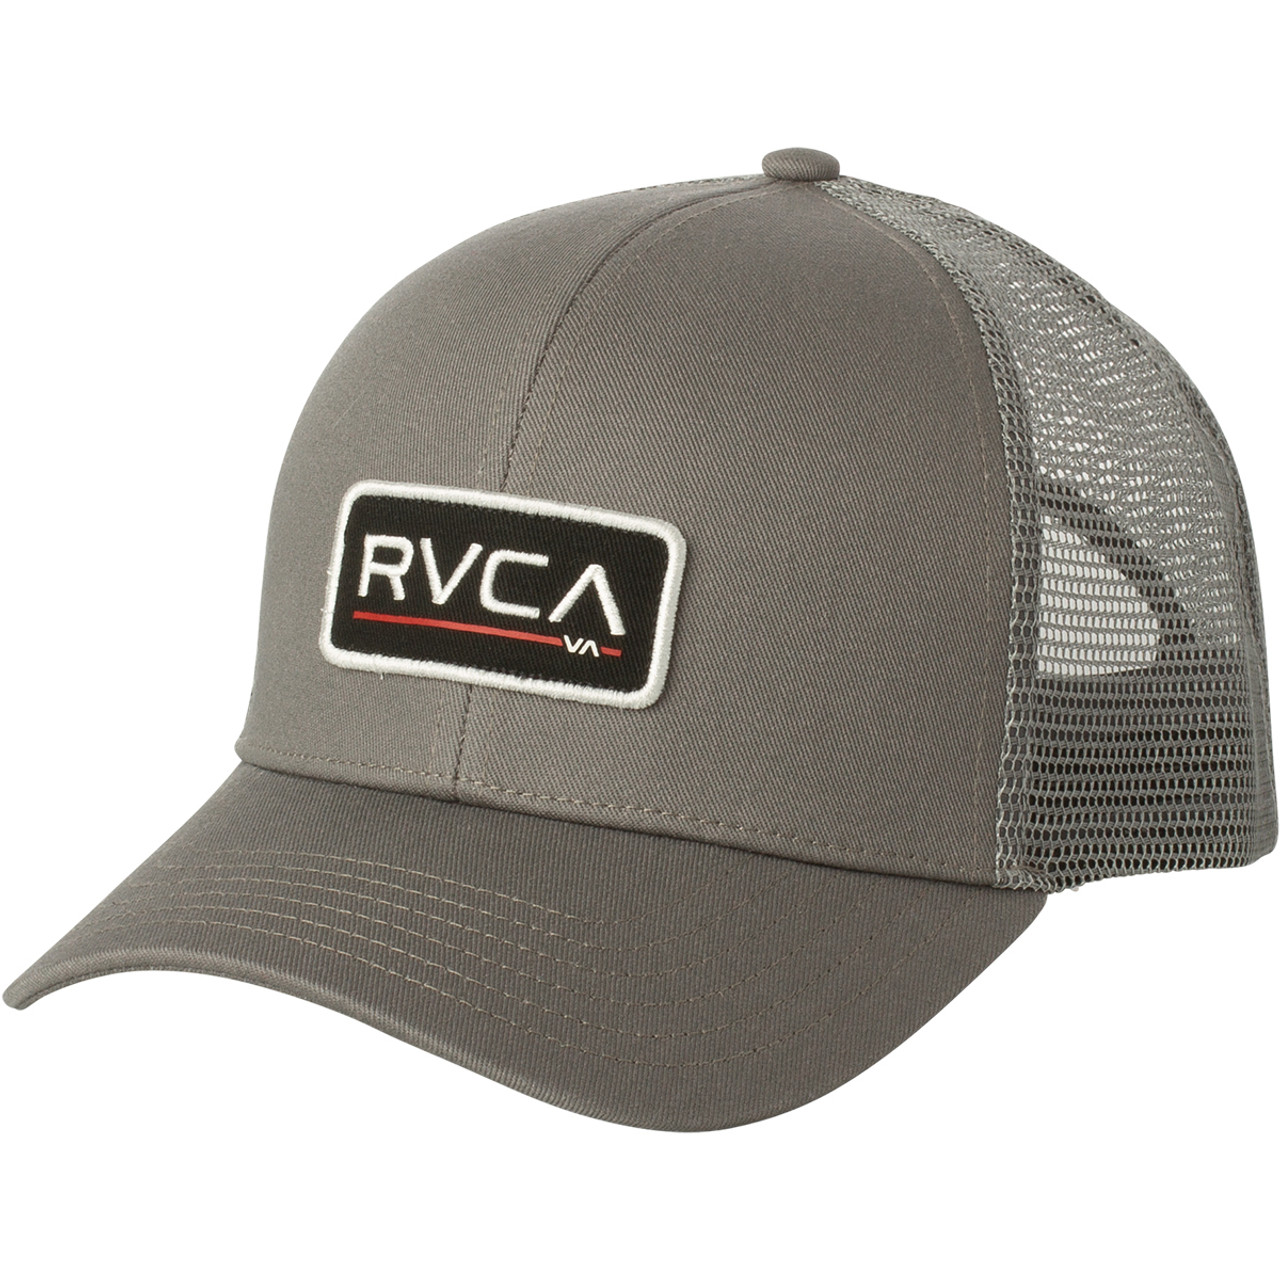 fba15e5fb1d78 RVCA Hat - Ticket Trucker - Grey - Surf and Dirt